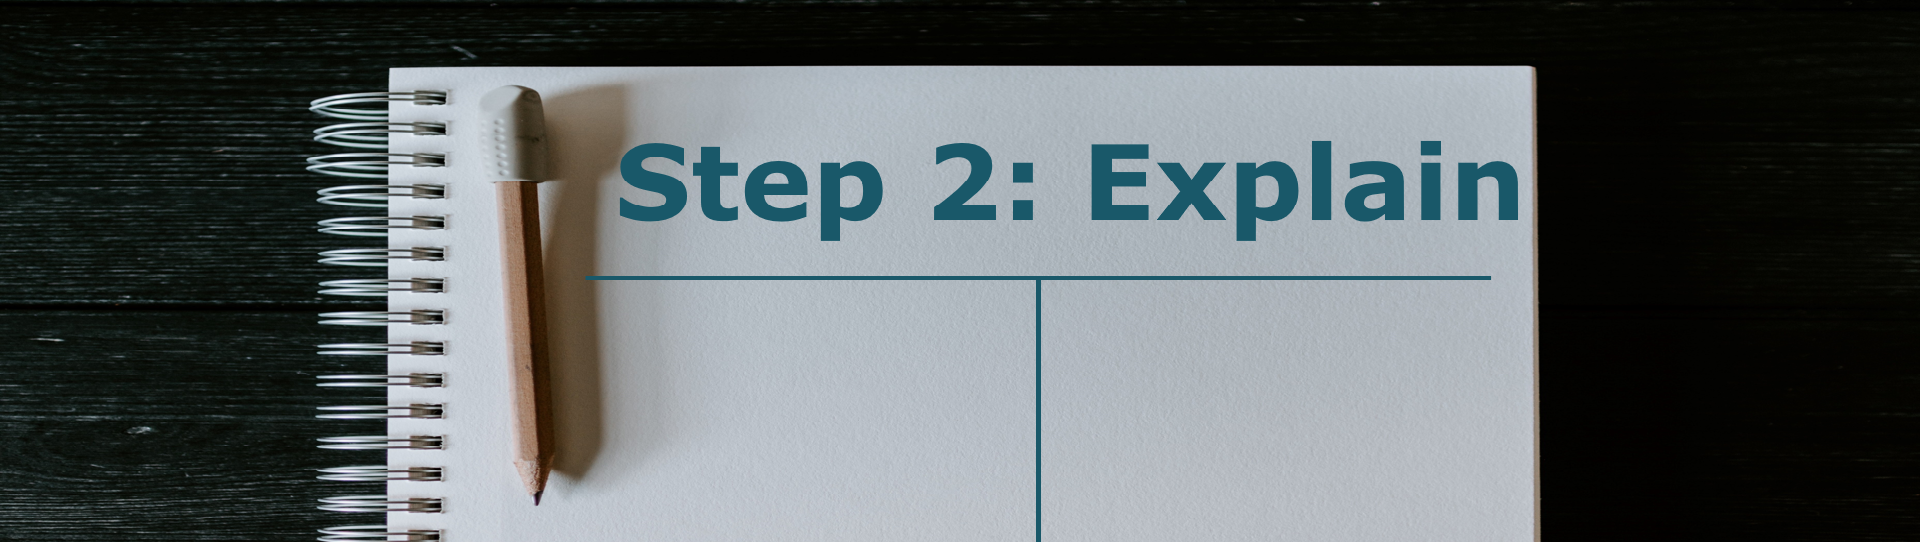 T Chart with Step 2: Explain at the top